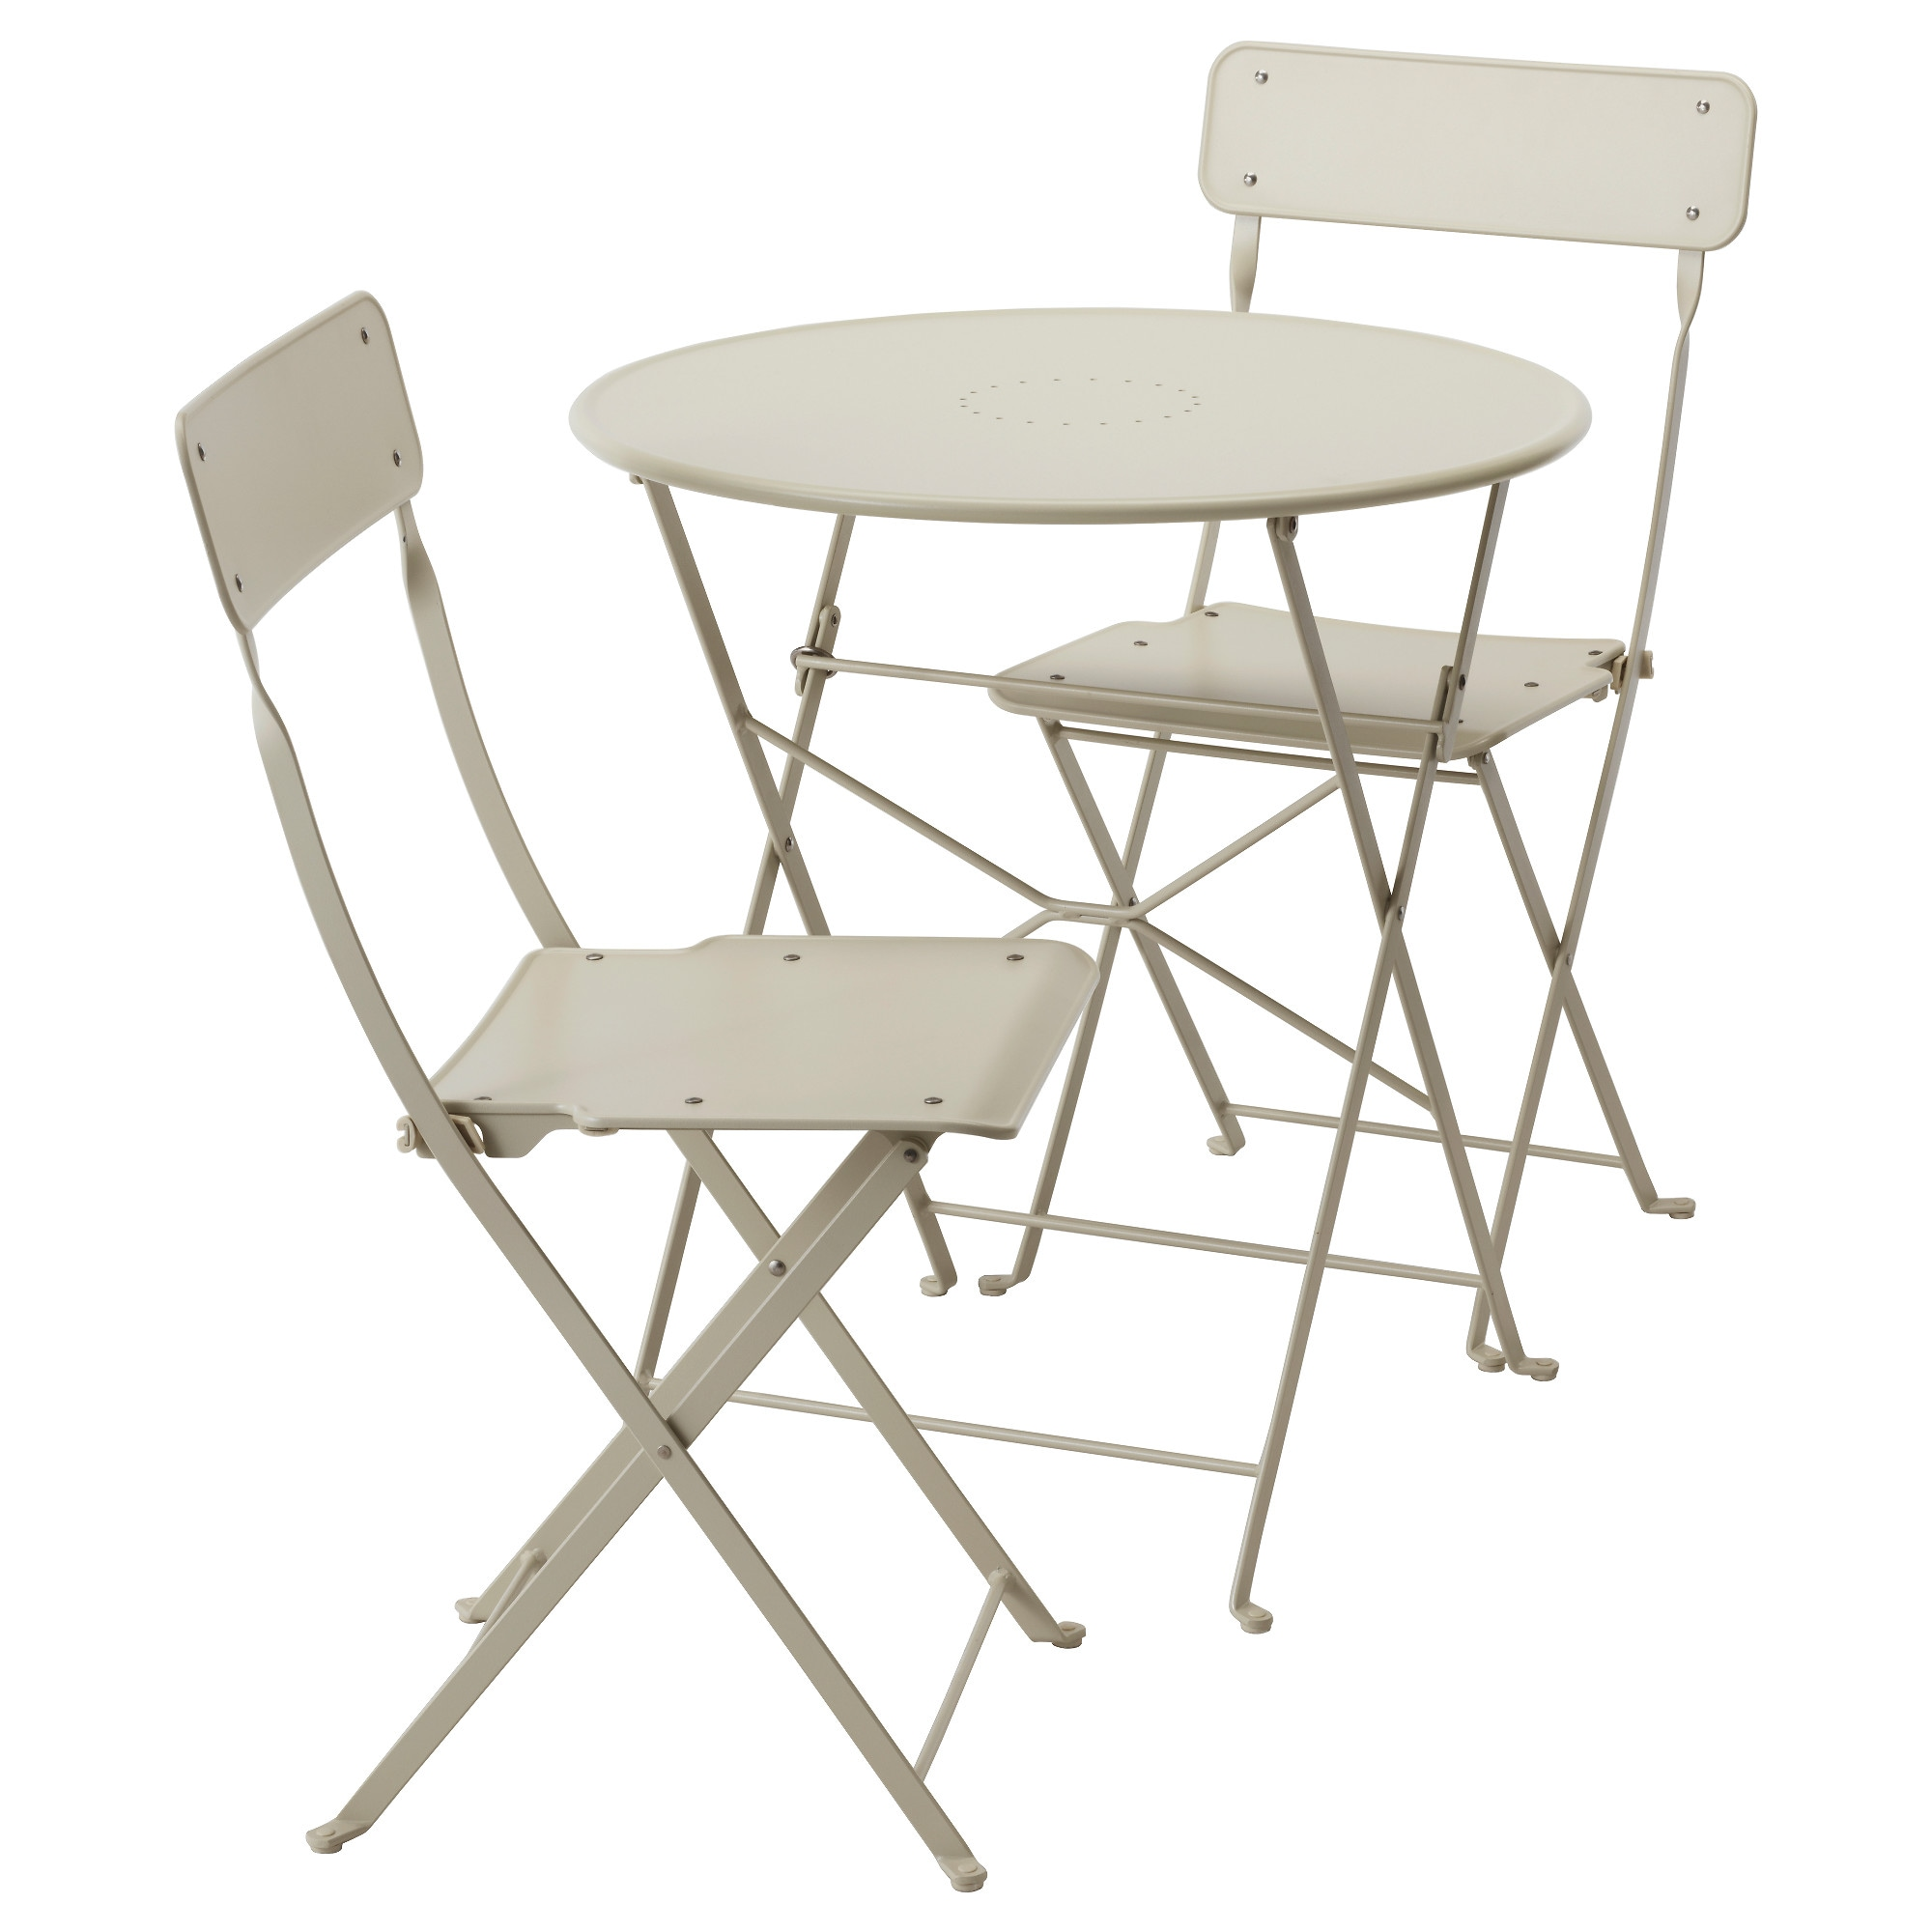 Awesome SALTHOLMEN Table And 2 Folding Chairs, Outdoor, Beige